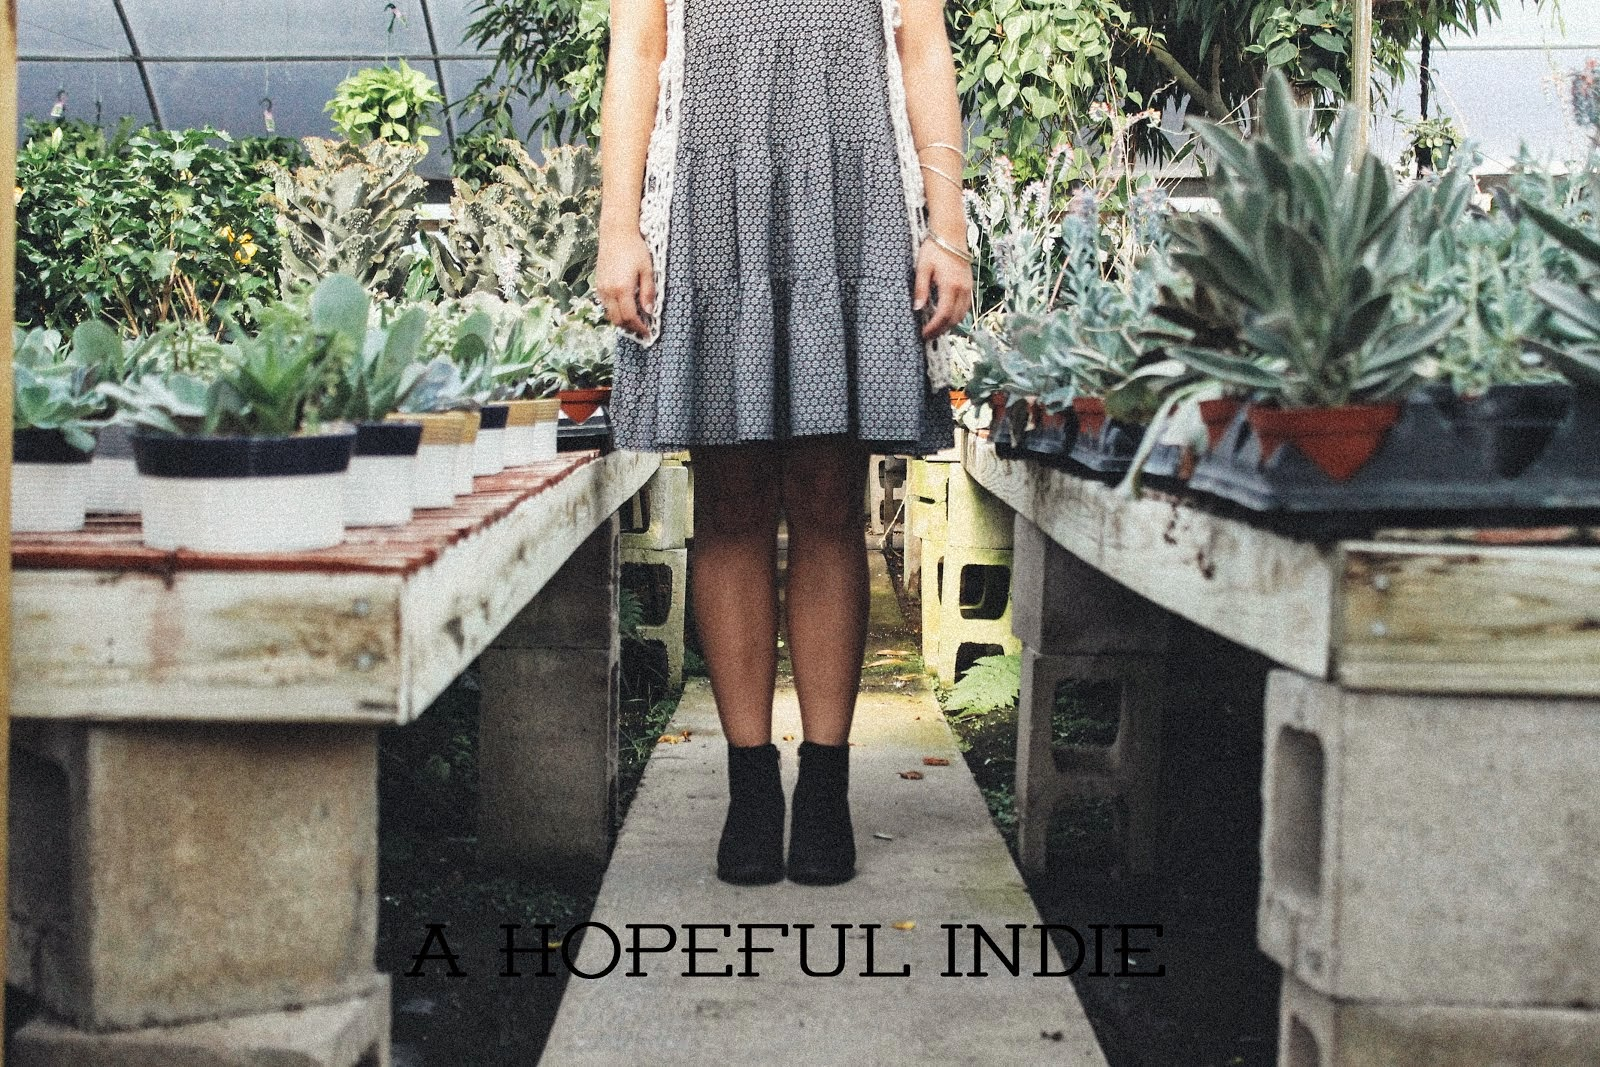 A Hopeful Indie